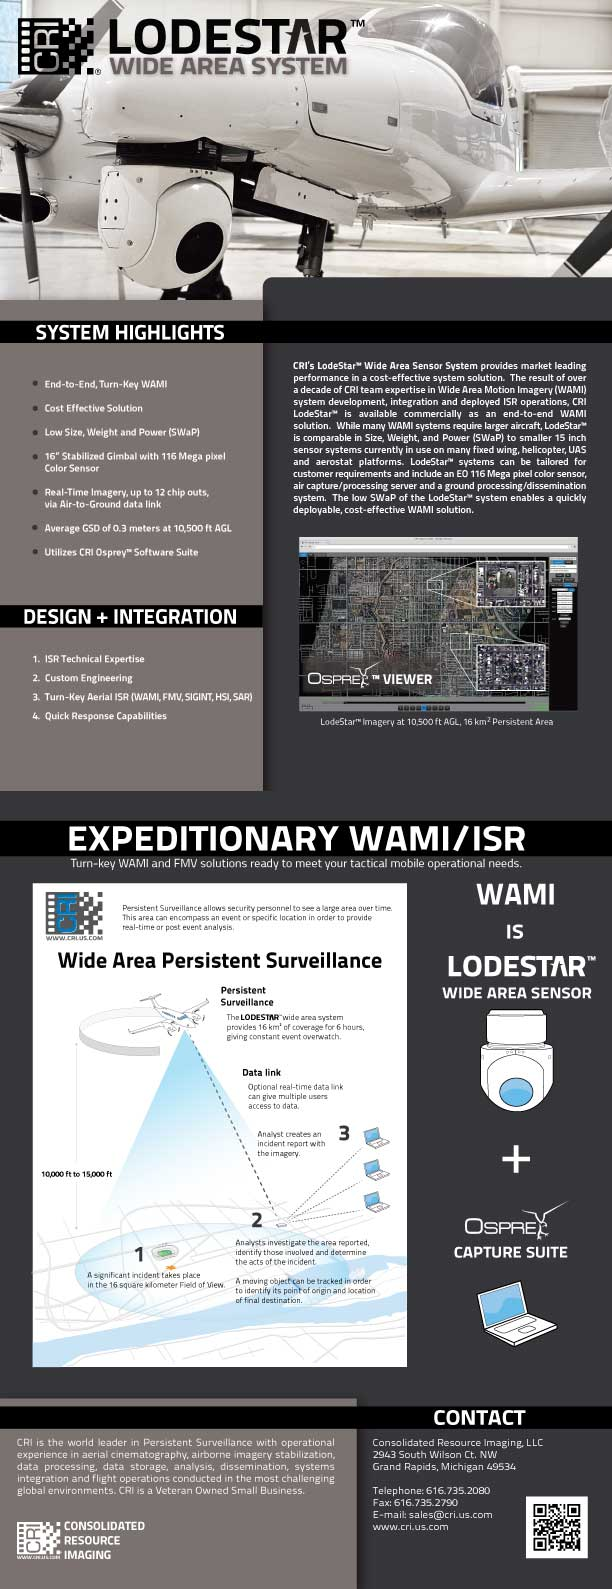 PDF of LodeStar Doc